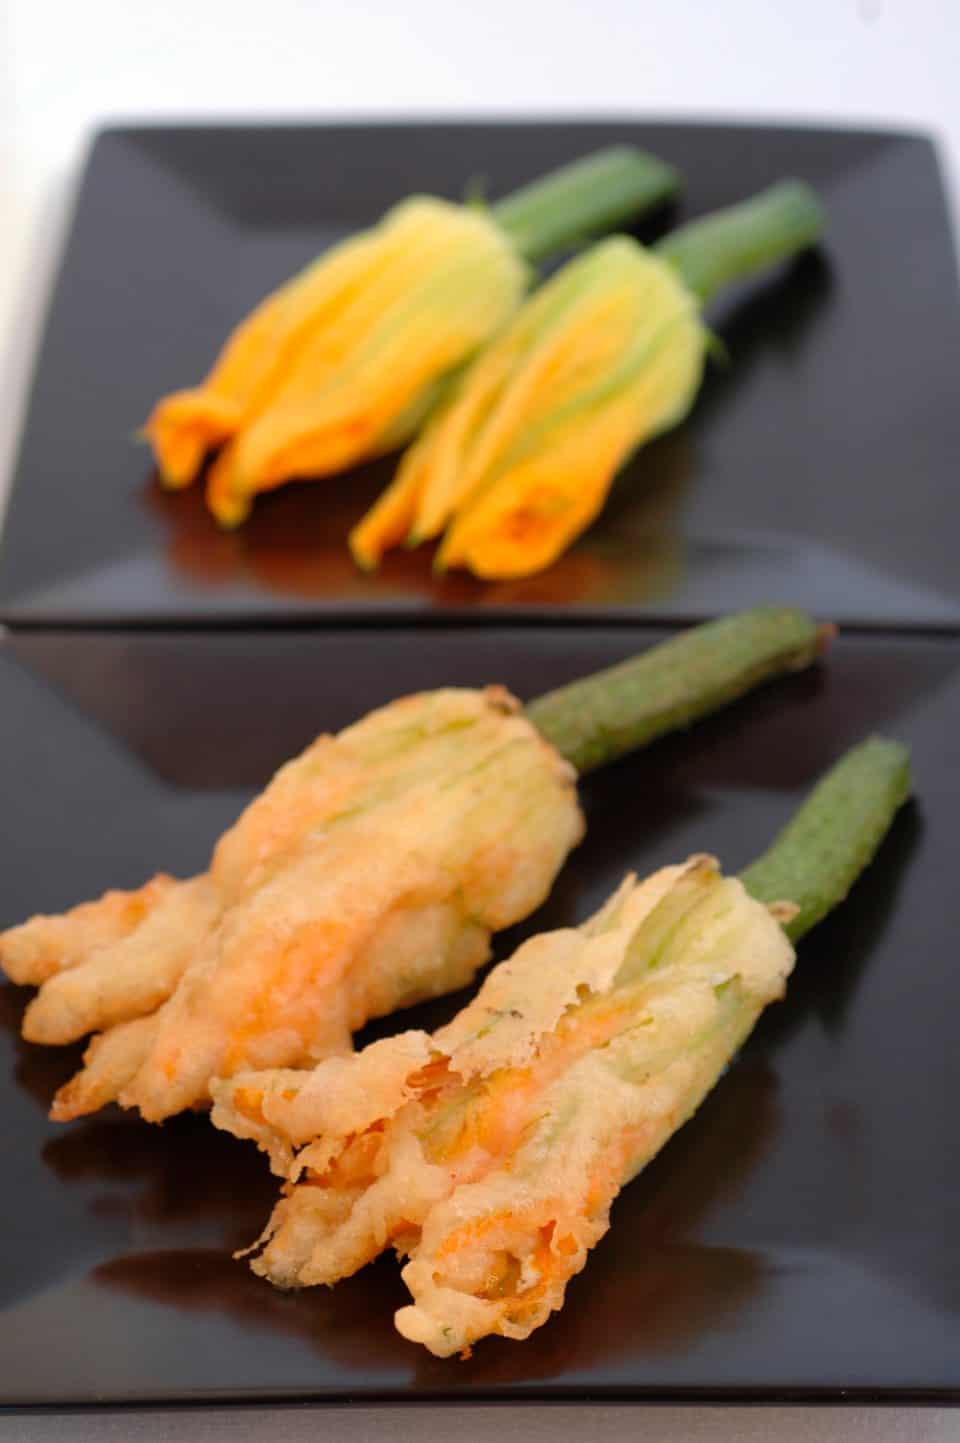 Persian Fetta and Caper Stuffed Zucchini Flowers